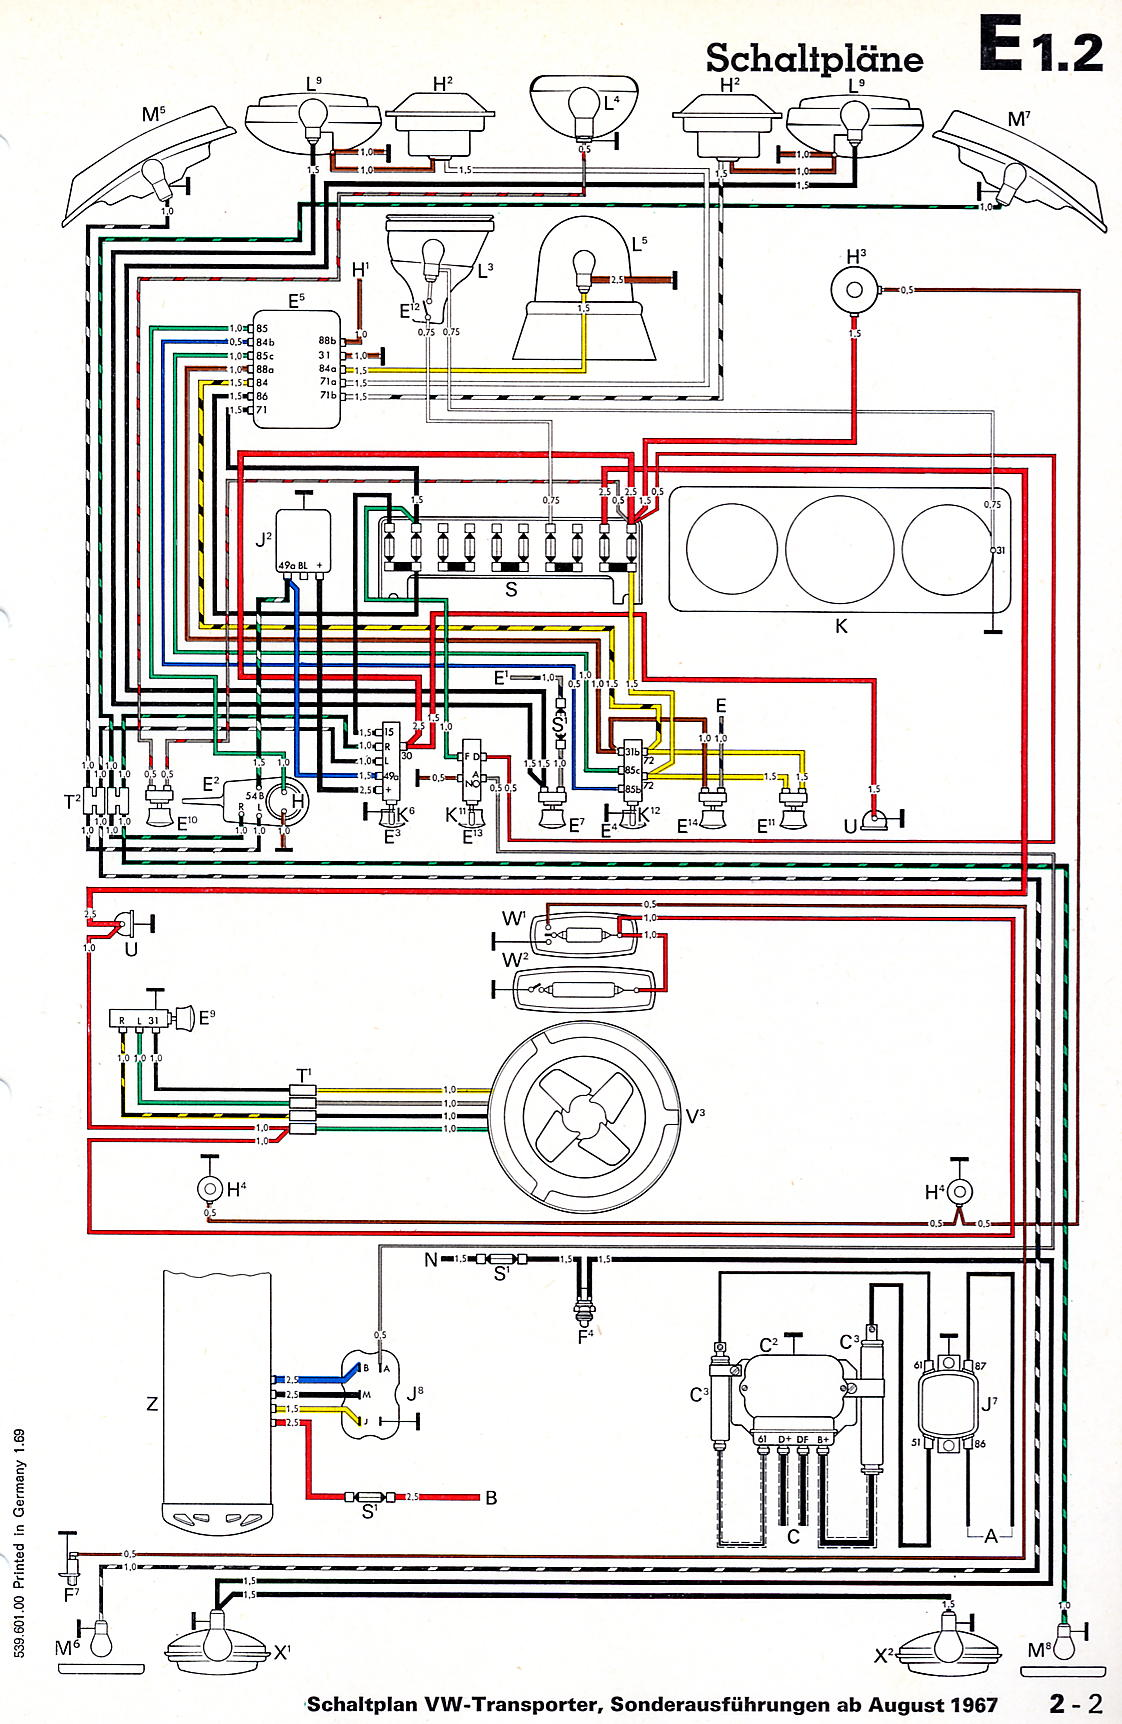 Transporter_from_August_1967_aditional_items vintagebus com vw bus (and other) wiring diagrams 1974 Super Beetle Wiring Diagram at reclaimingppi.co